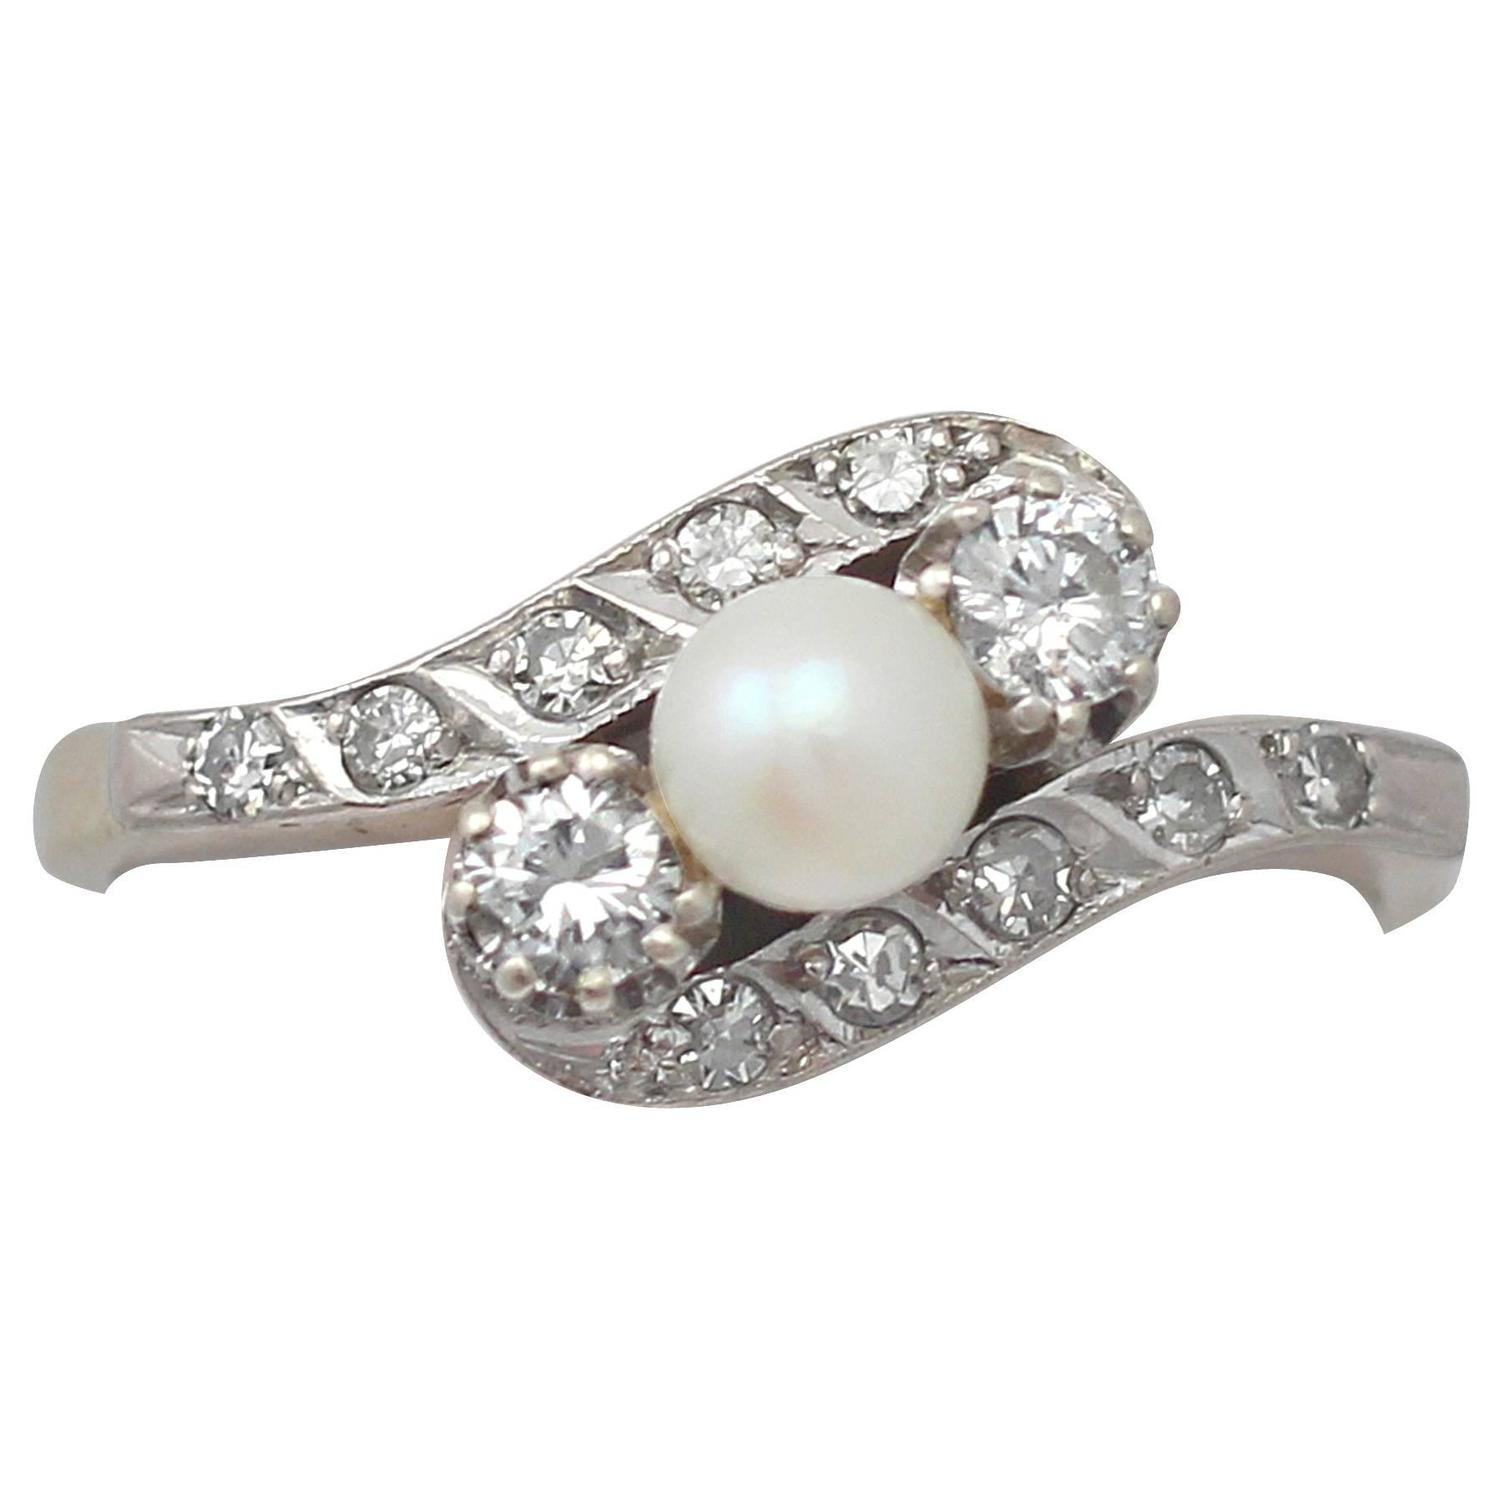 pearl circa for victorian engagement at org rings gold id antique diamond view j depth carat sale ring jewelry